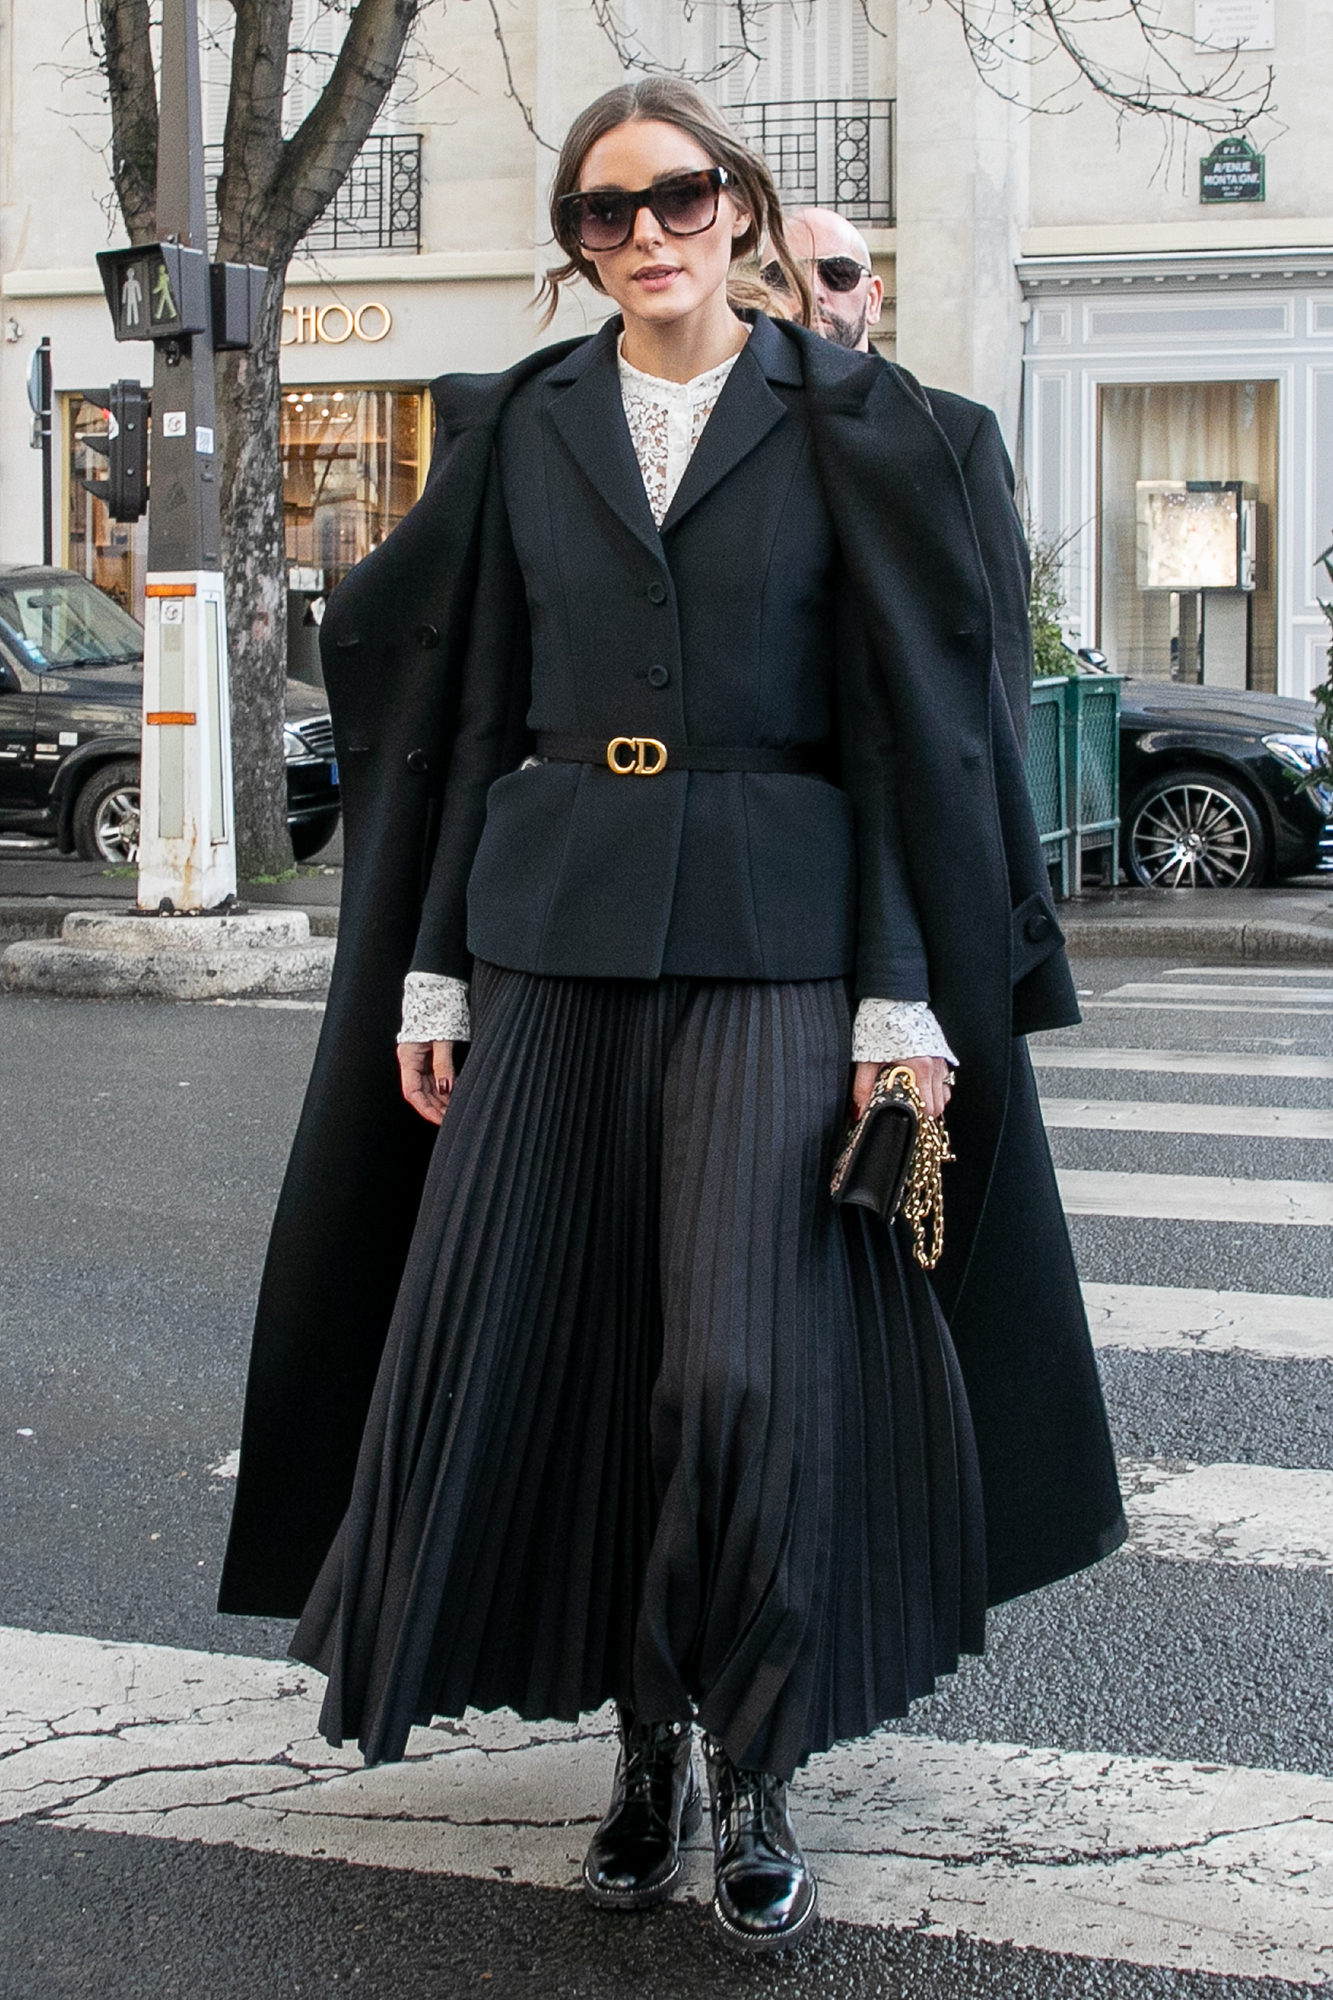 See the Best Celebrity Street Style From Paris Menswear Fall-Winter 2019 Fashion Week - The socialite showed Us how to layer up on Thursday, January 17, in her pleated skirt, lace top and blazer ensemble that she topped off with a duster coat and Dior belt.